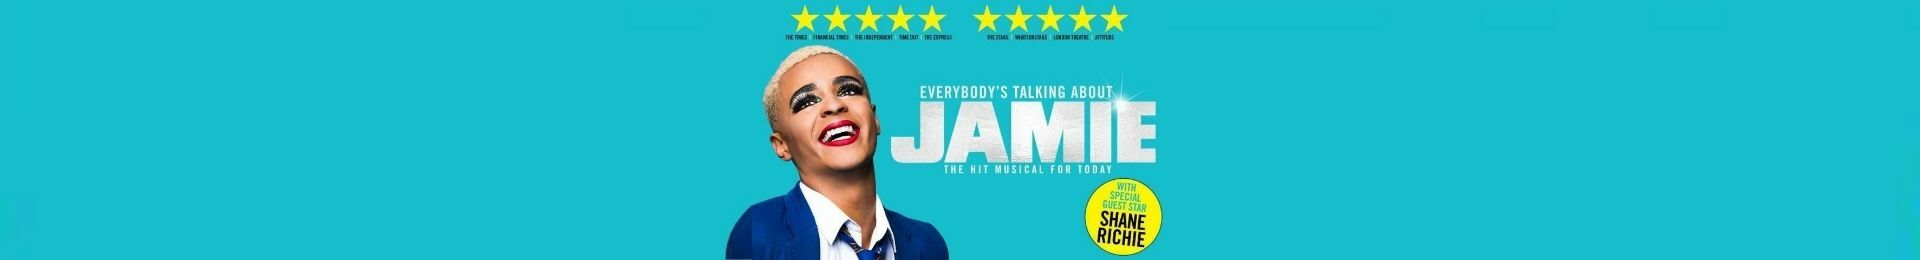 Everybody's Talking About Jamie (Manchester - UK Tour) banner image